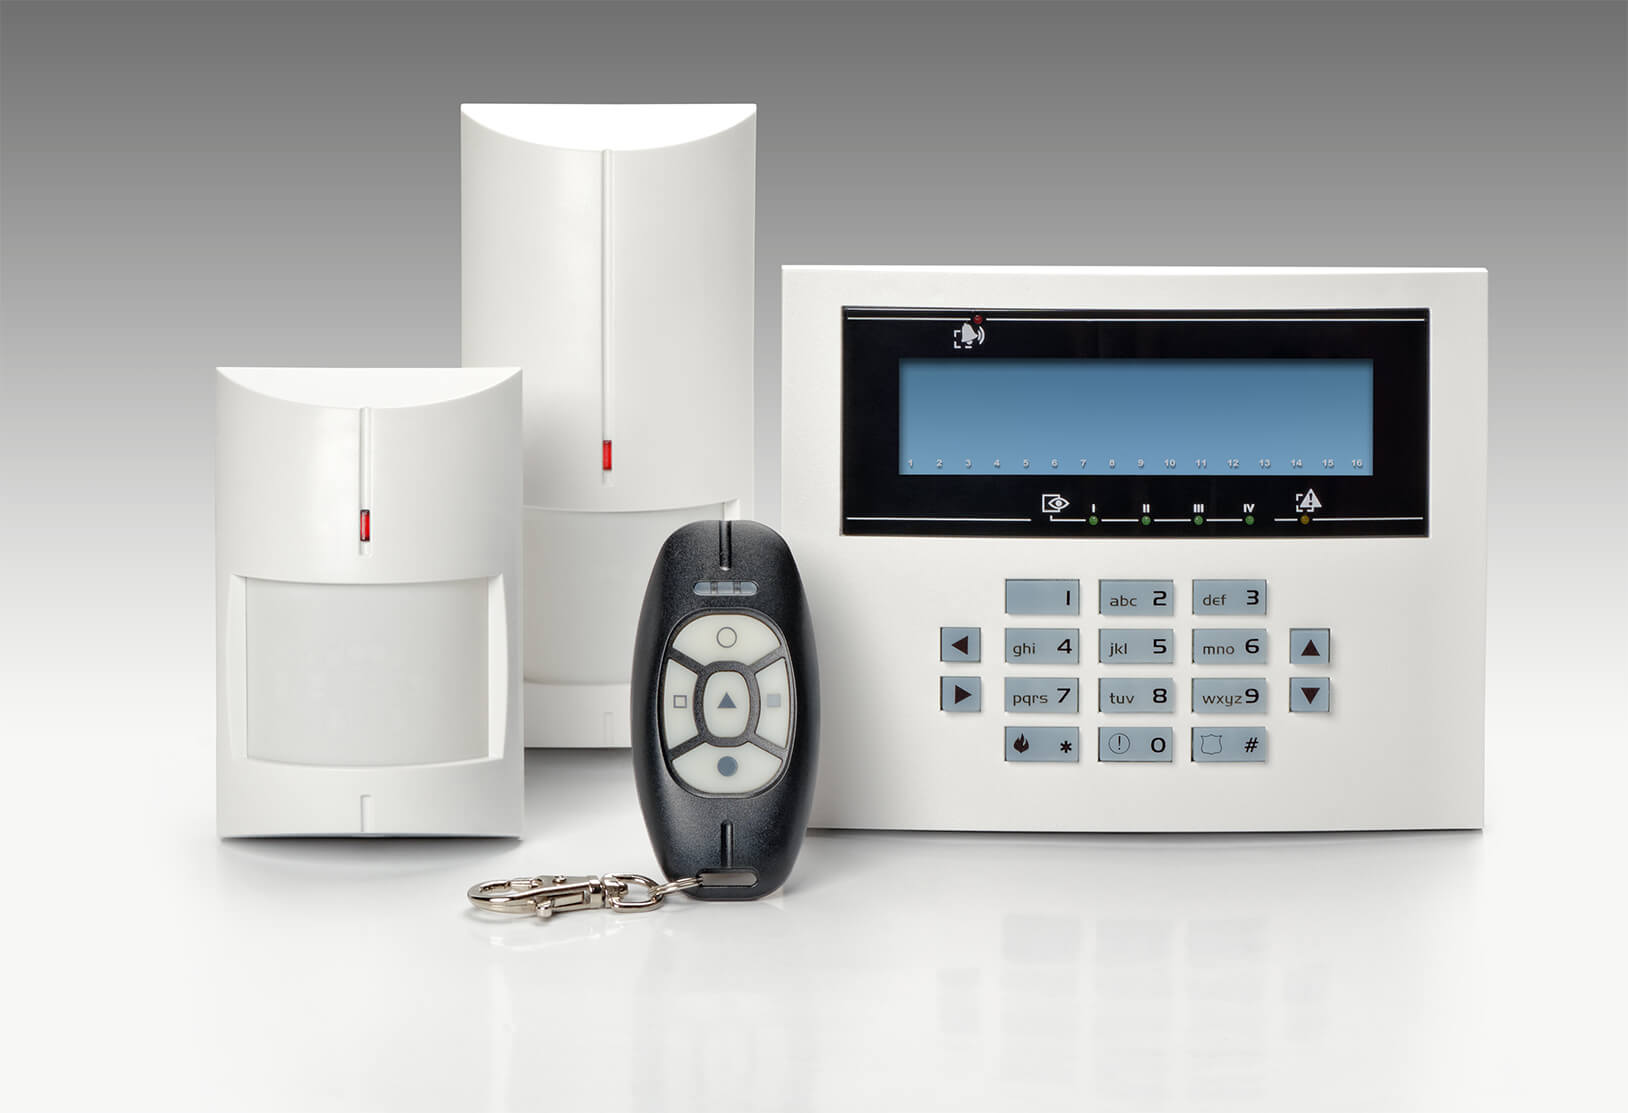 Business & Residential NACOSS Approved Burglar Alarms In Crouch End N8 - Local Crouch End N8 security company.Call 02078872244 - Dedicated to Safety & Security. Companies, shops and homes ..